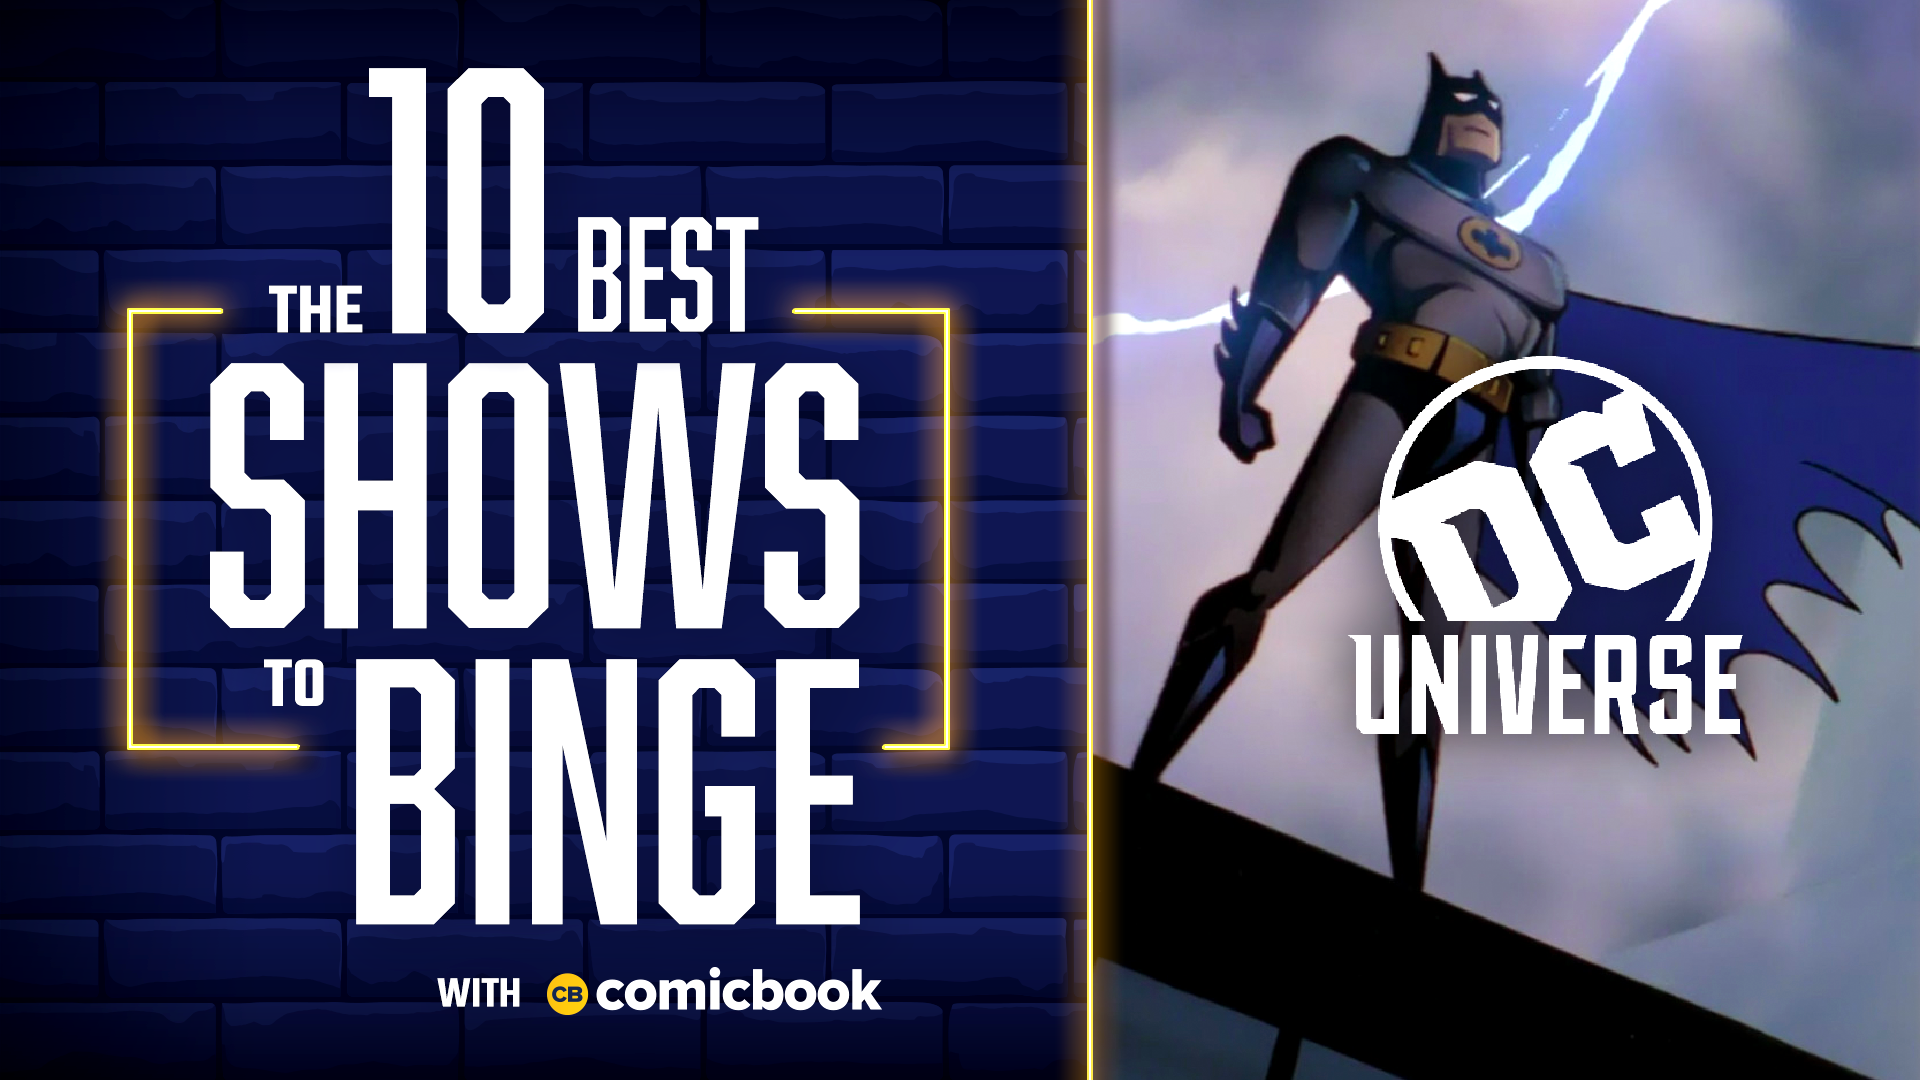 10 Best Shows to Binge on DC Universe